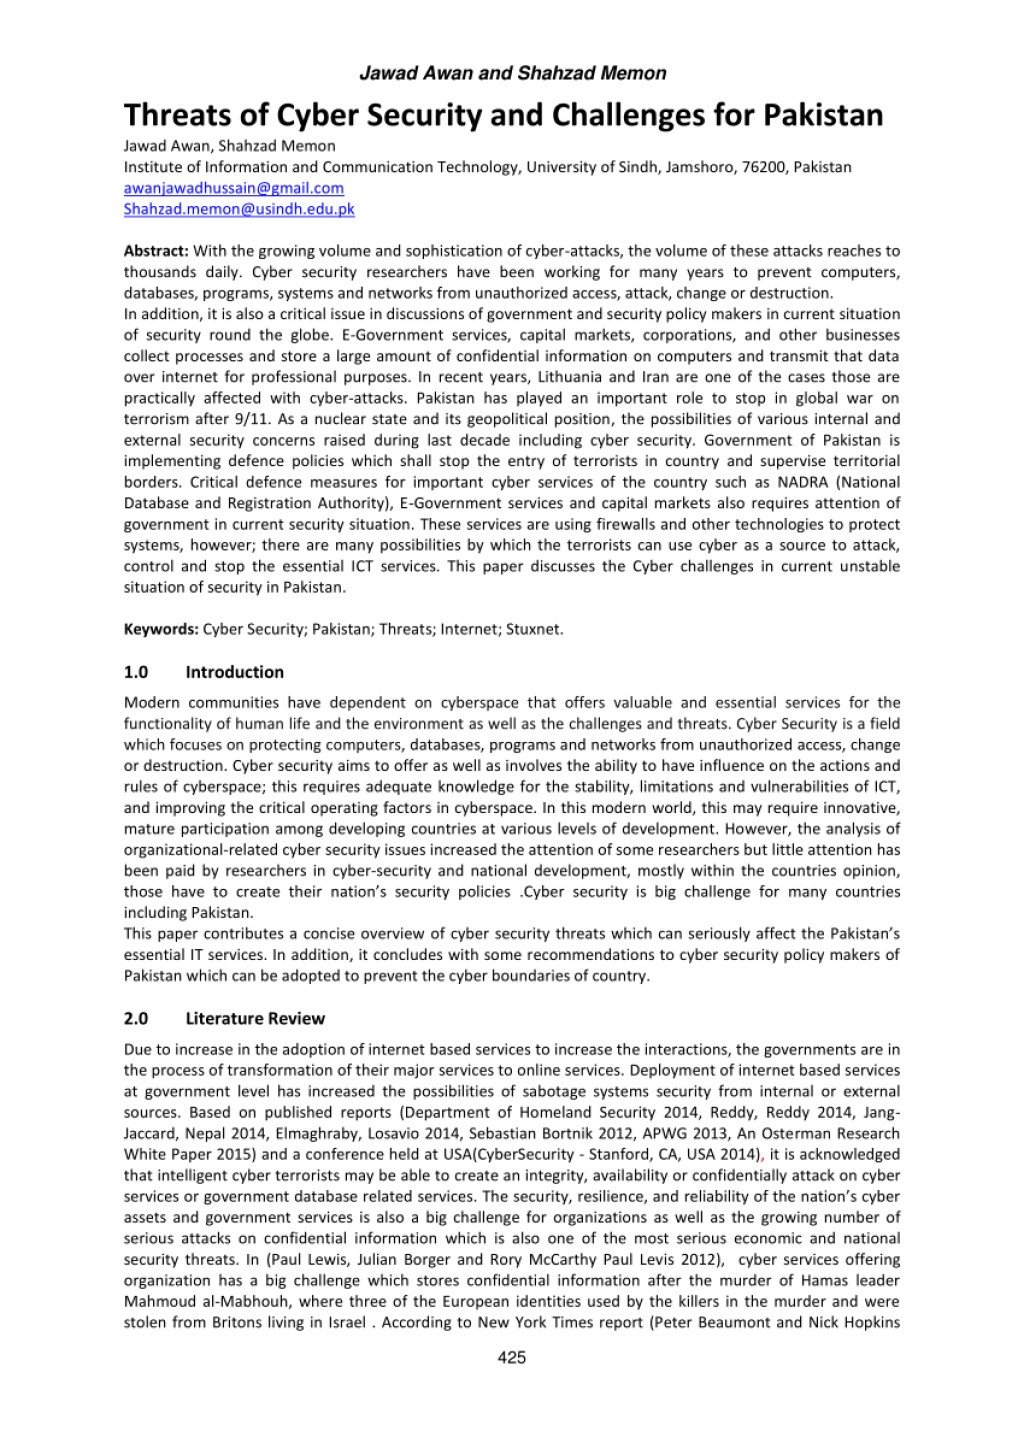 005 Research Paper Cyber Security Papers Pdf Wondrous 2017 Large